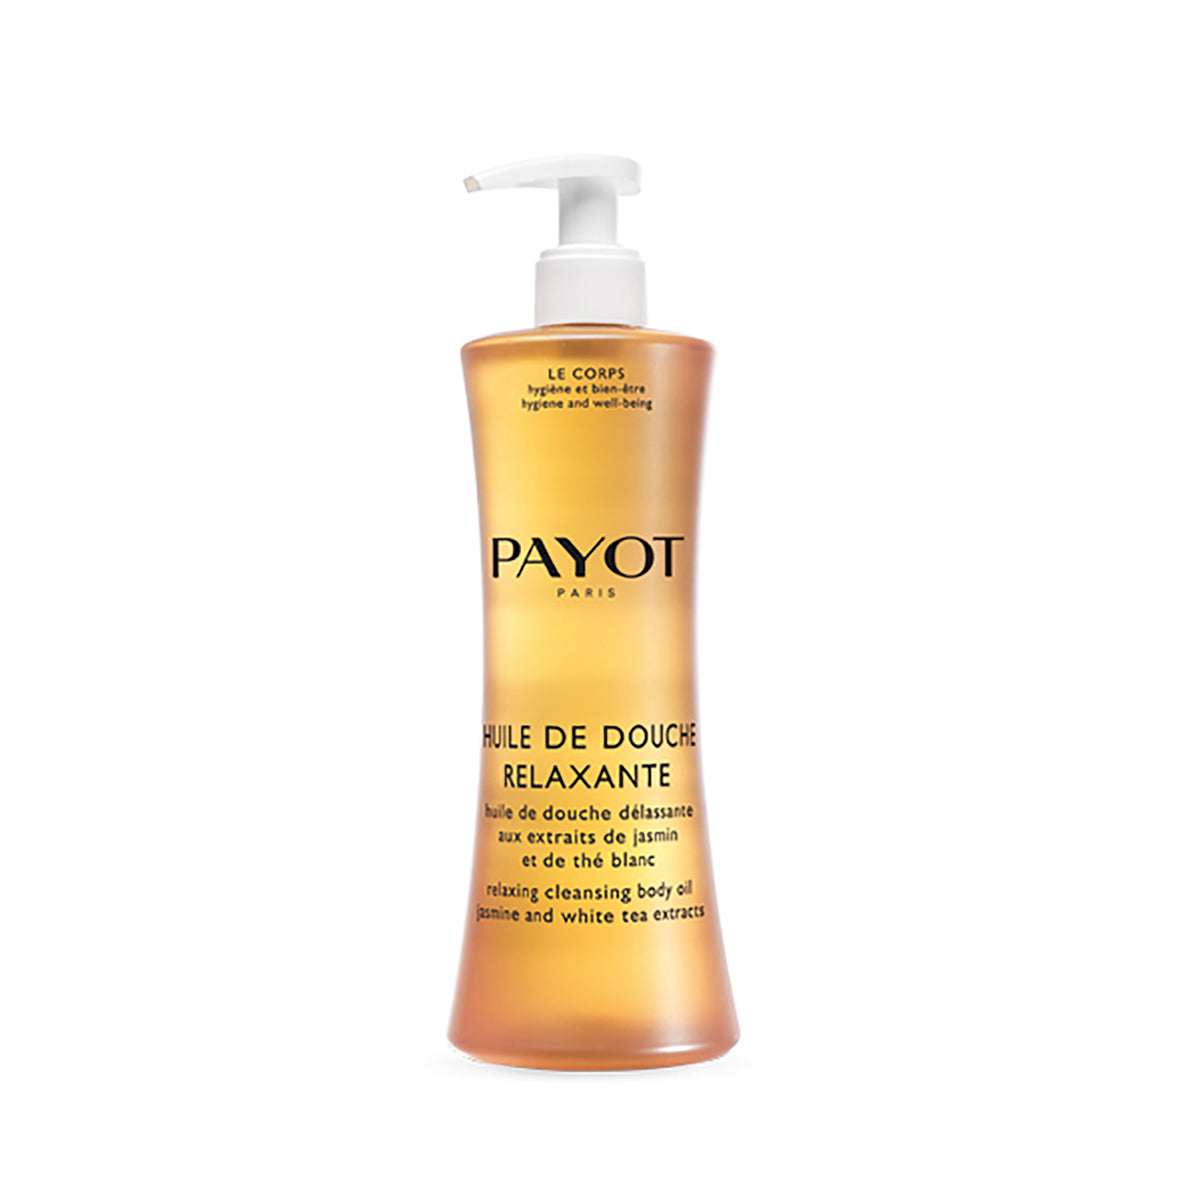 Payot Huile Relaxante Shower Gel